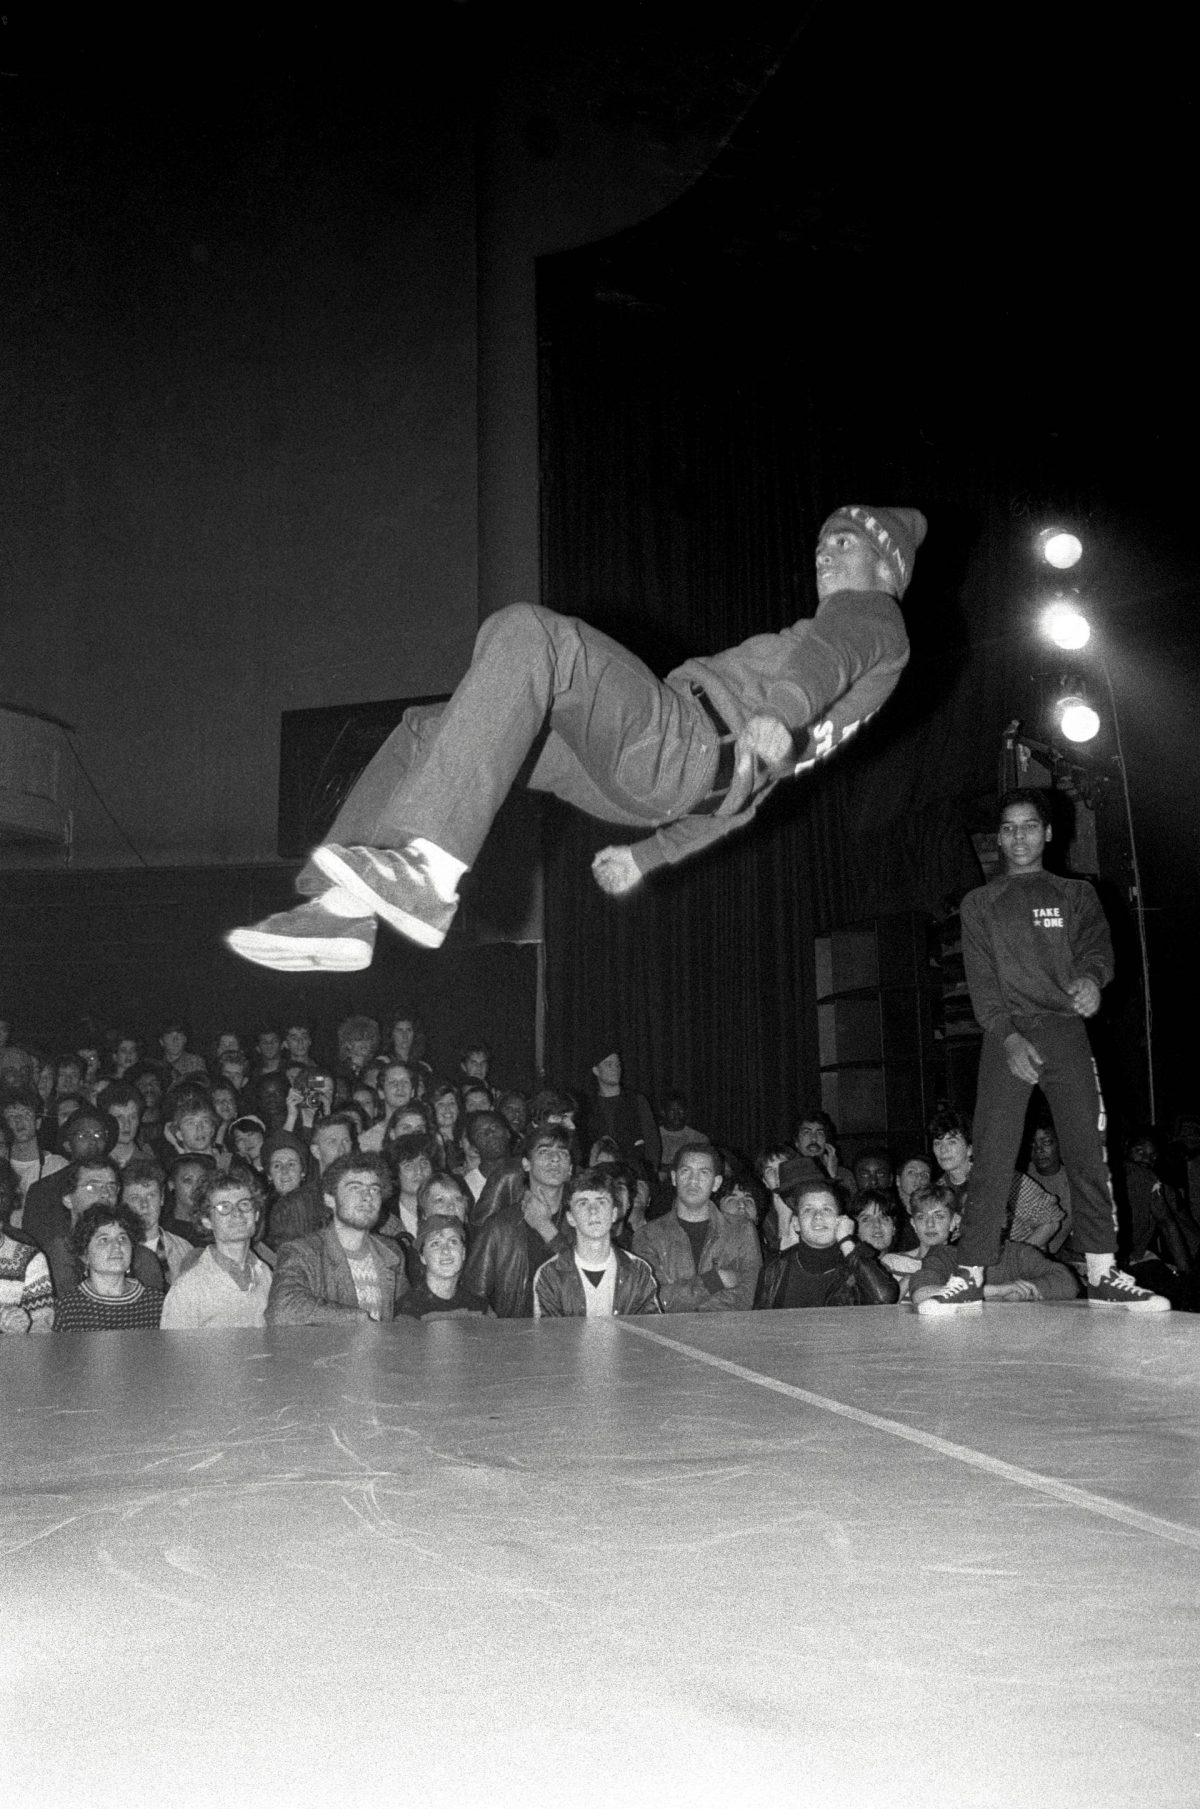 A breakdancer from Rock Steady Crew at the Venue in London, 1982 David Corio was covering one of the first hip-hop events in London, featuring Rock Steady Crew, and shot Wayne 'Frosty Freeze' Frost mid-air. He recalls: 'This show was probably the first time almost anyone in the audience had seen people spinning round on their backs and heads and almost floating in the air. I love the look of wonderment on the faces in the crowd' Photograph: David Corio/Redferns